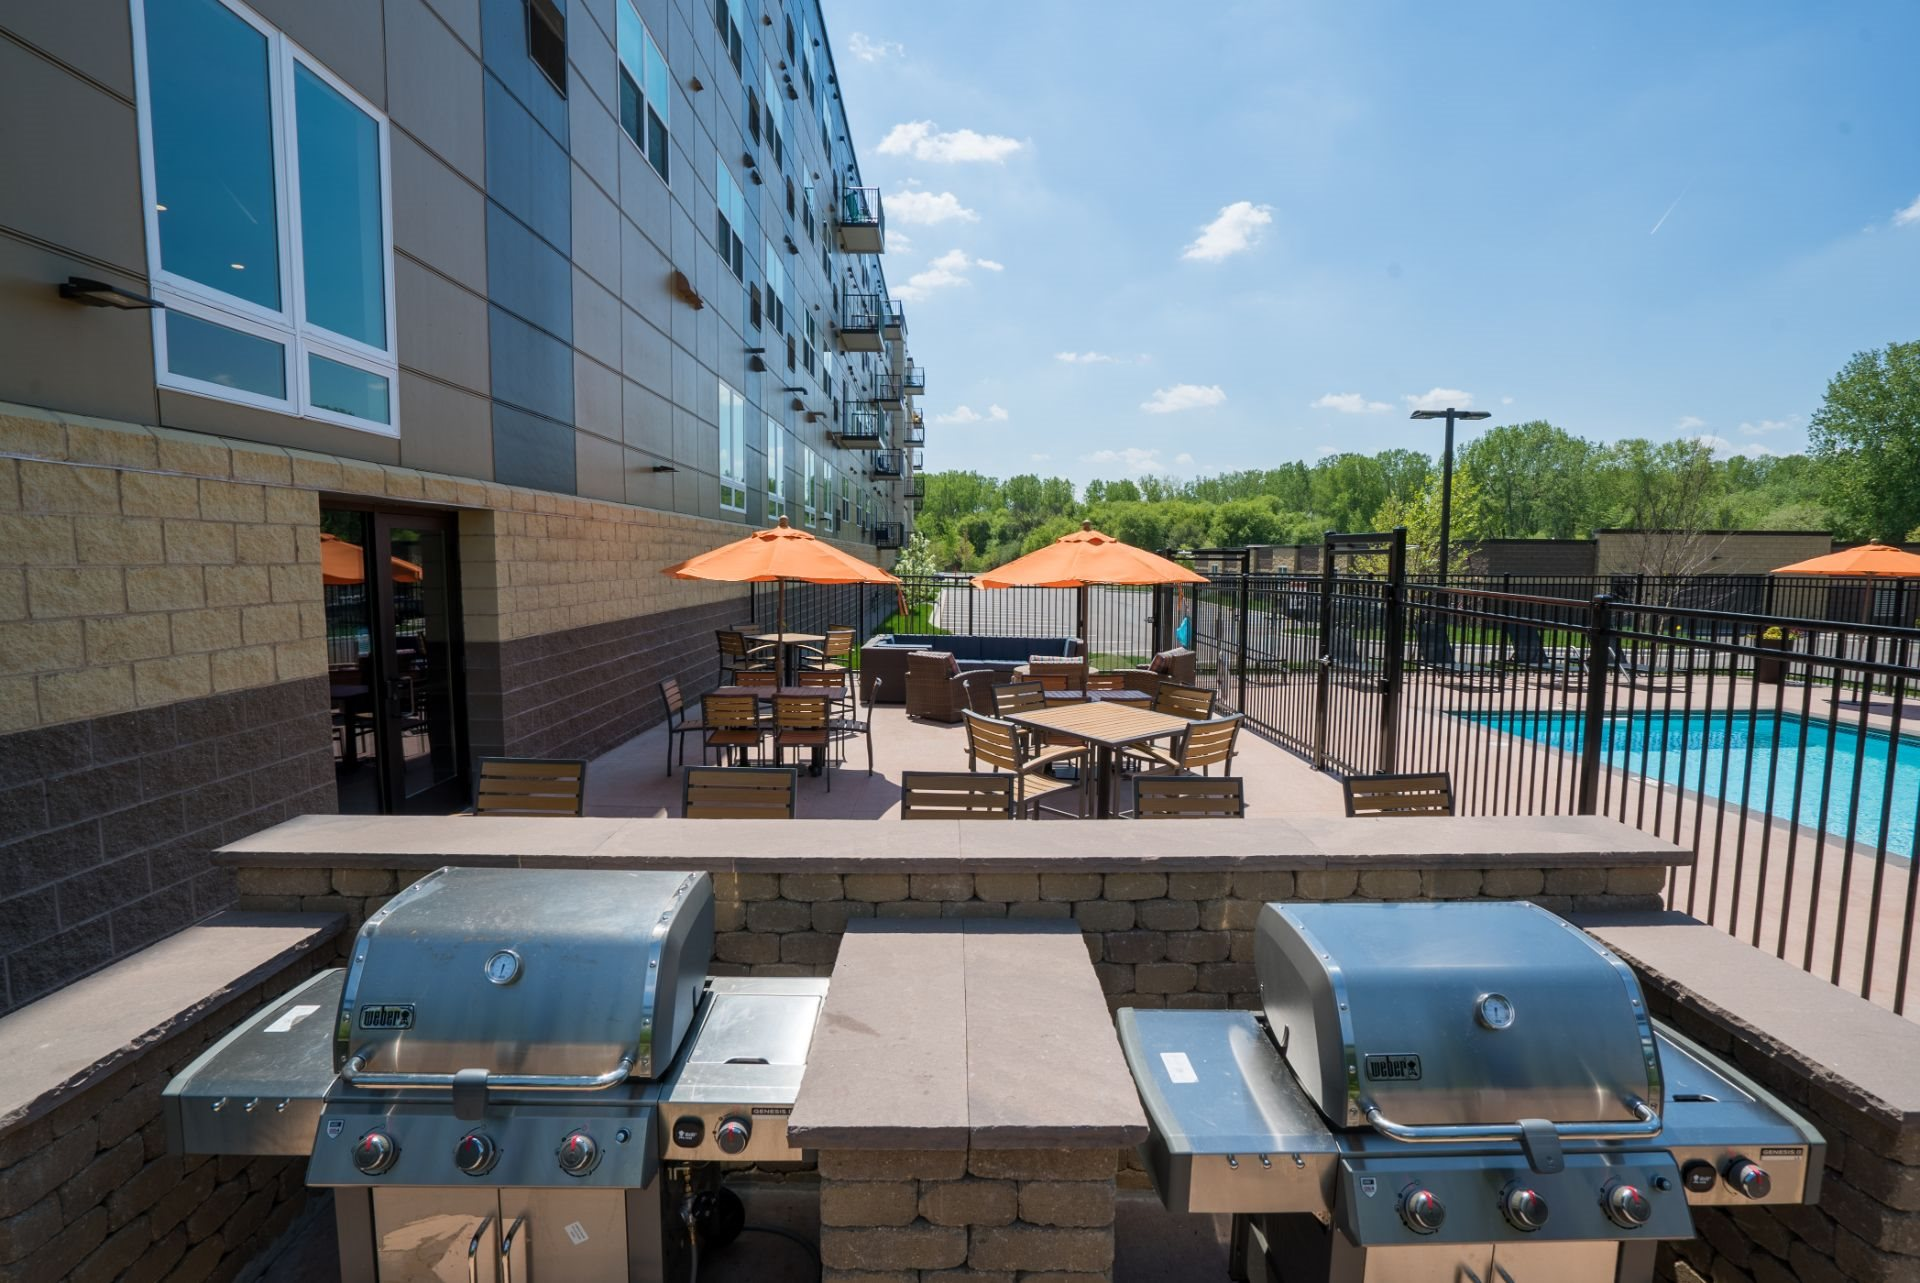 Poolside Outdoor Kitchen with Grilling Stations, Berkshire Central Apartments- 9436 Ulysses Street NE  Blaine, MN.  55434